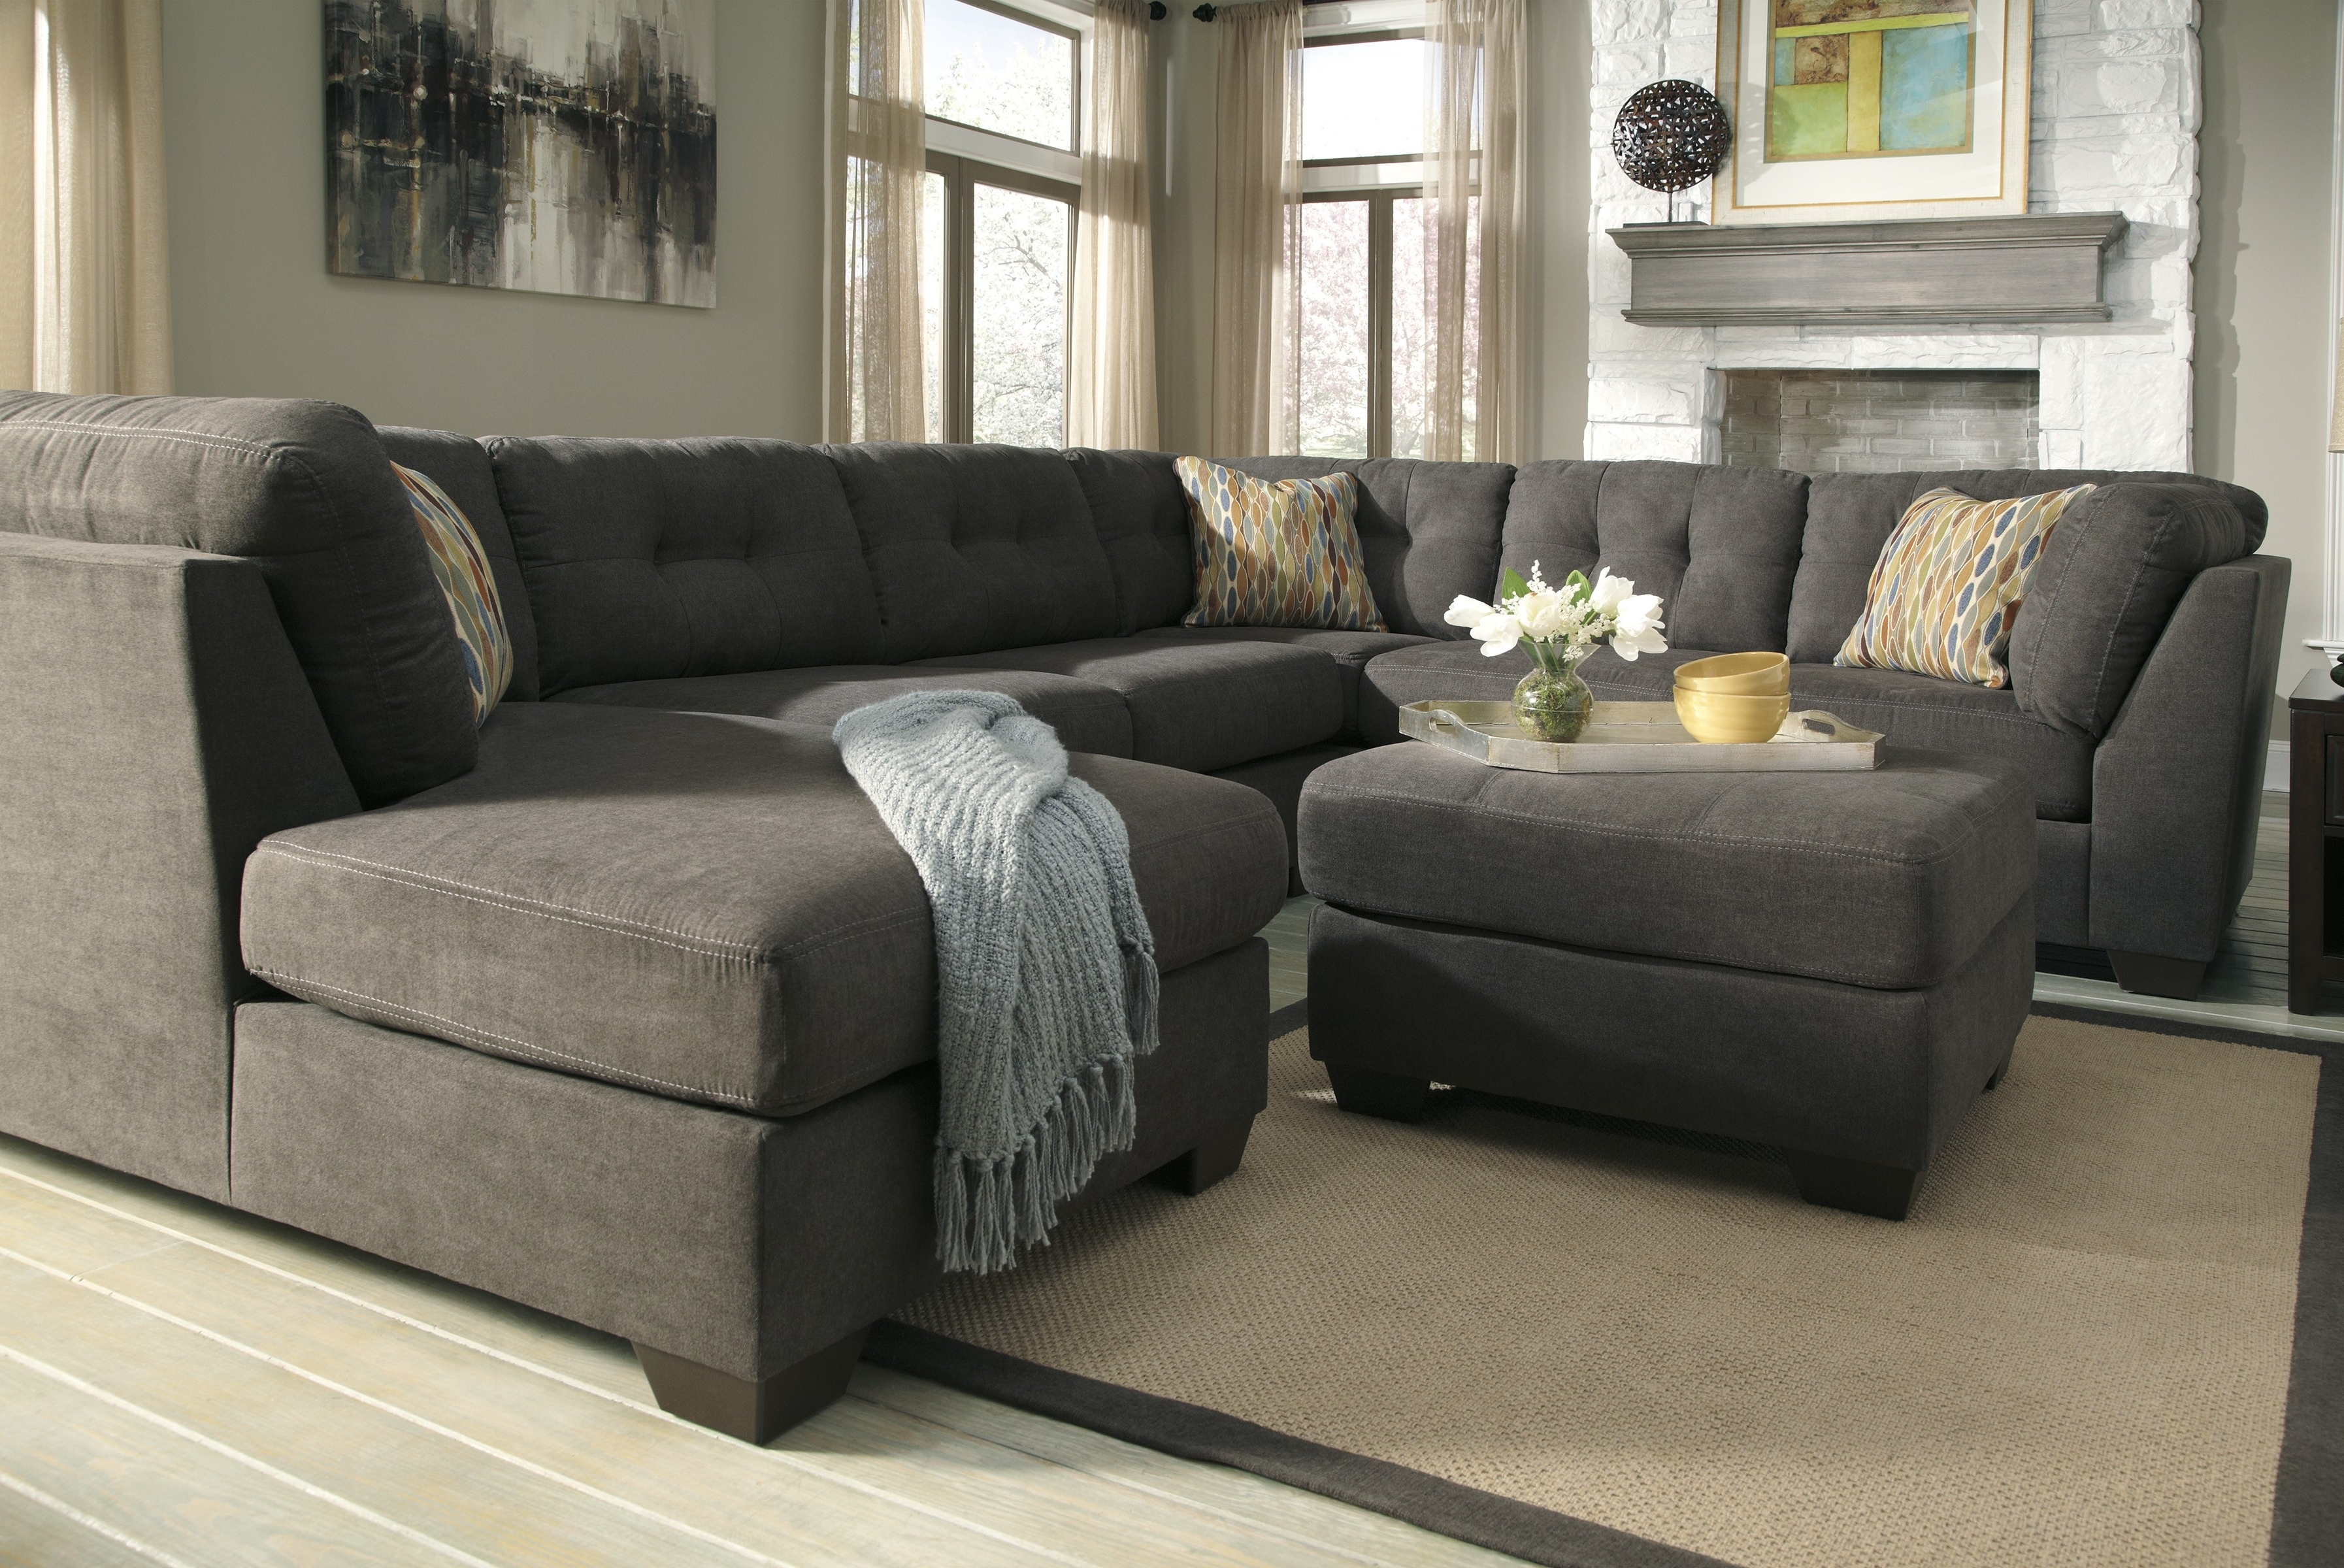 Preferred Cozy Tufted Sectional Sofa With Chaise 34 With Additional Intended For Tufted Sectionals Sofa With Chaise (View 7 of 15)